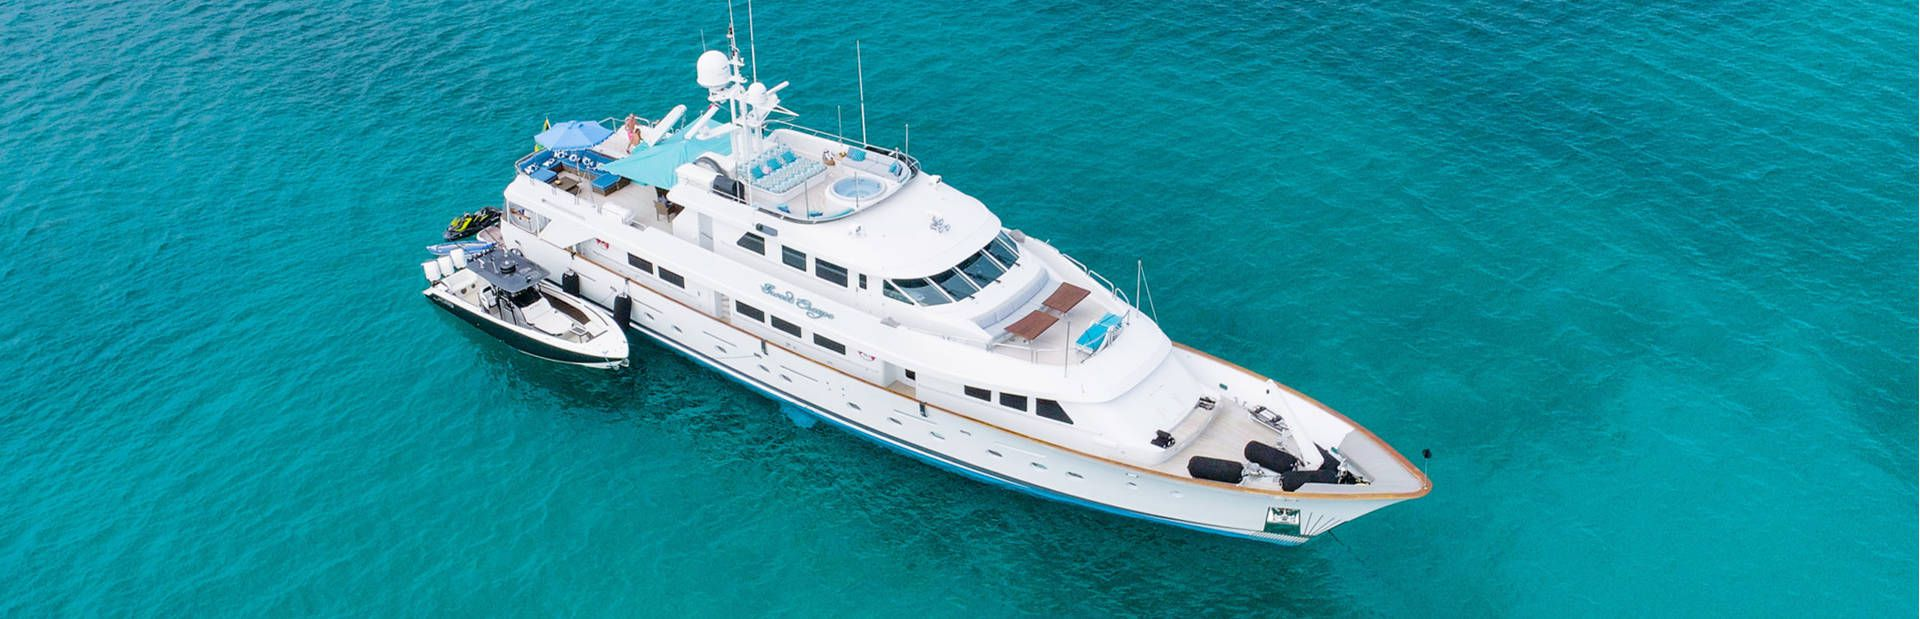 Motor Yacht Sweet Escape at anchor